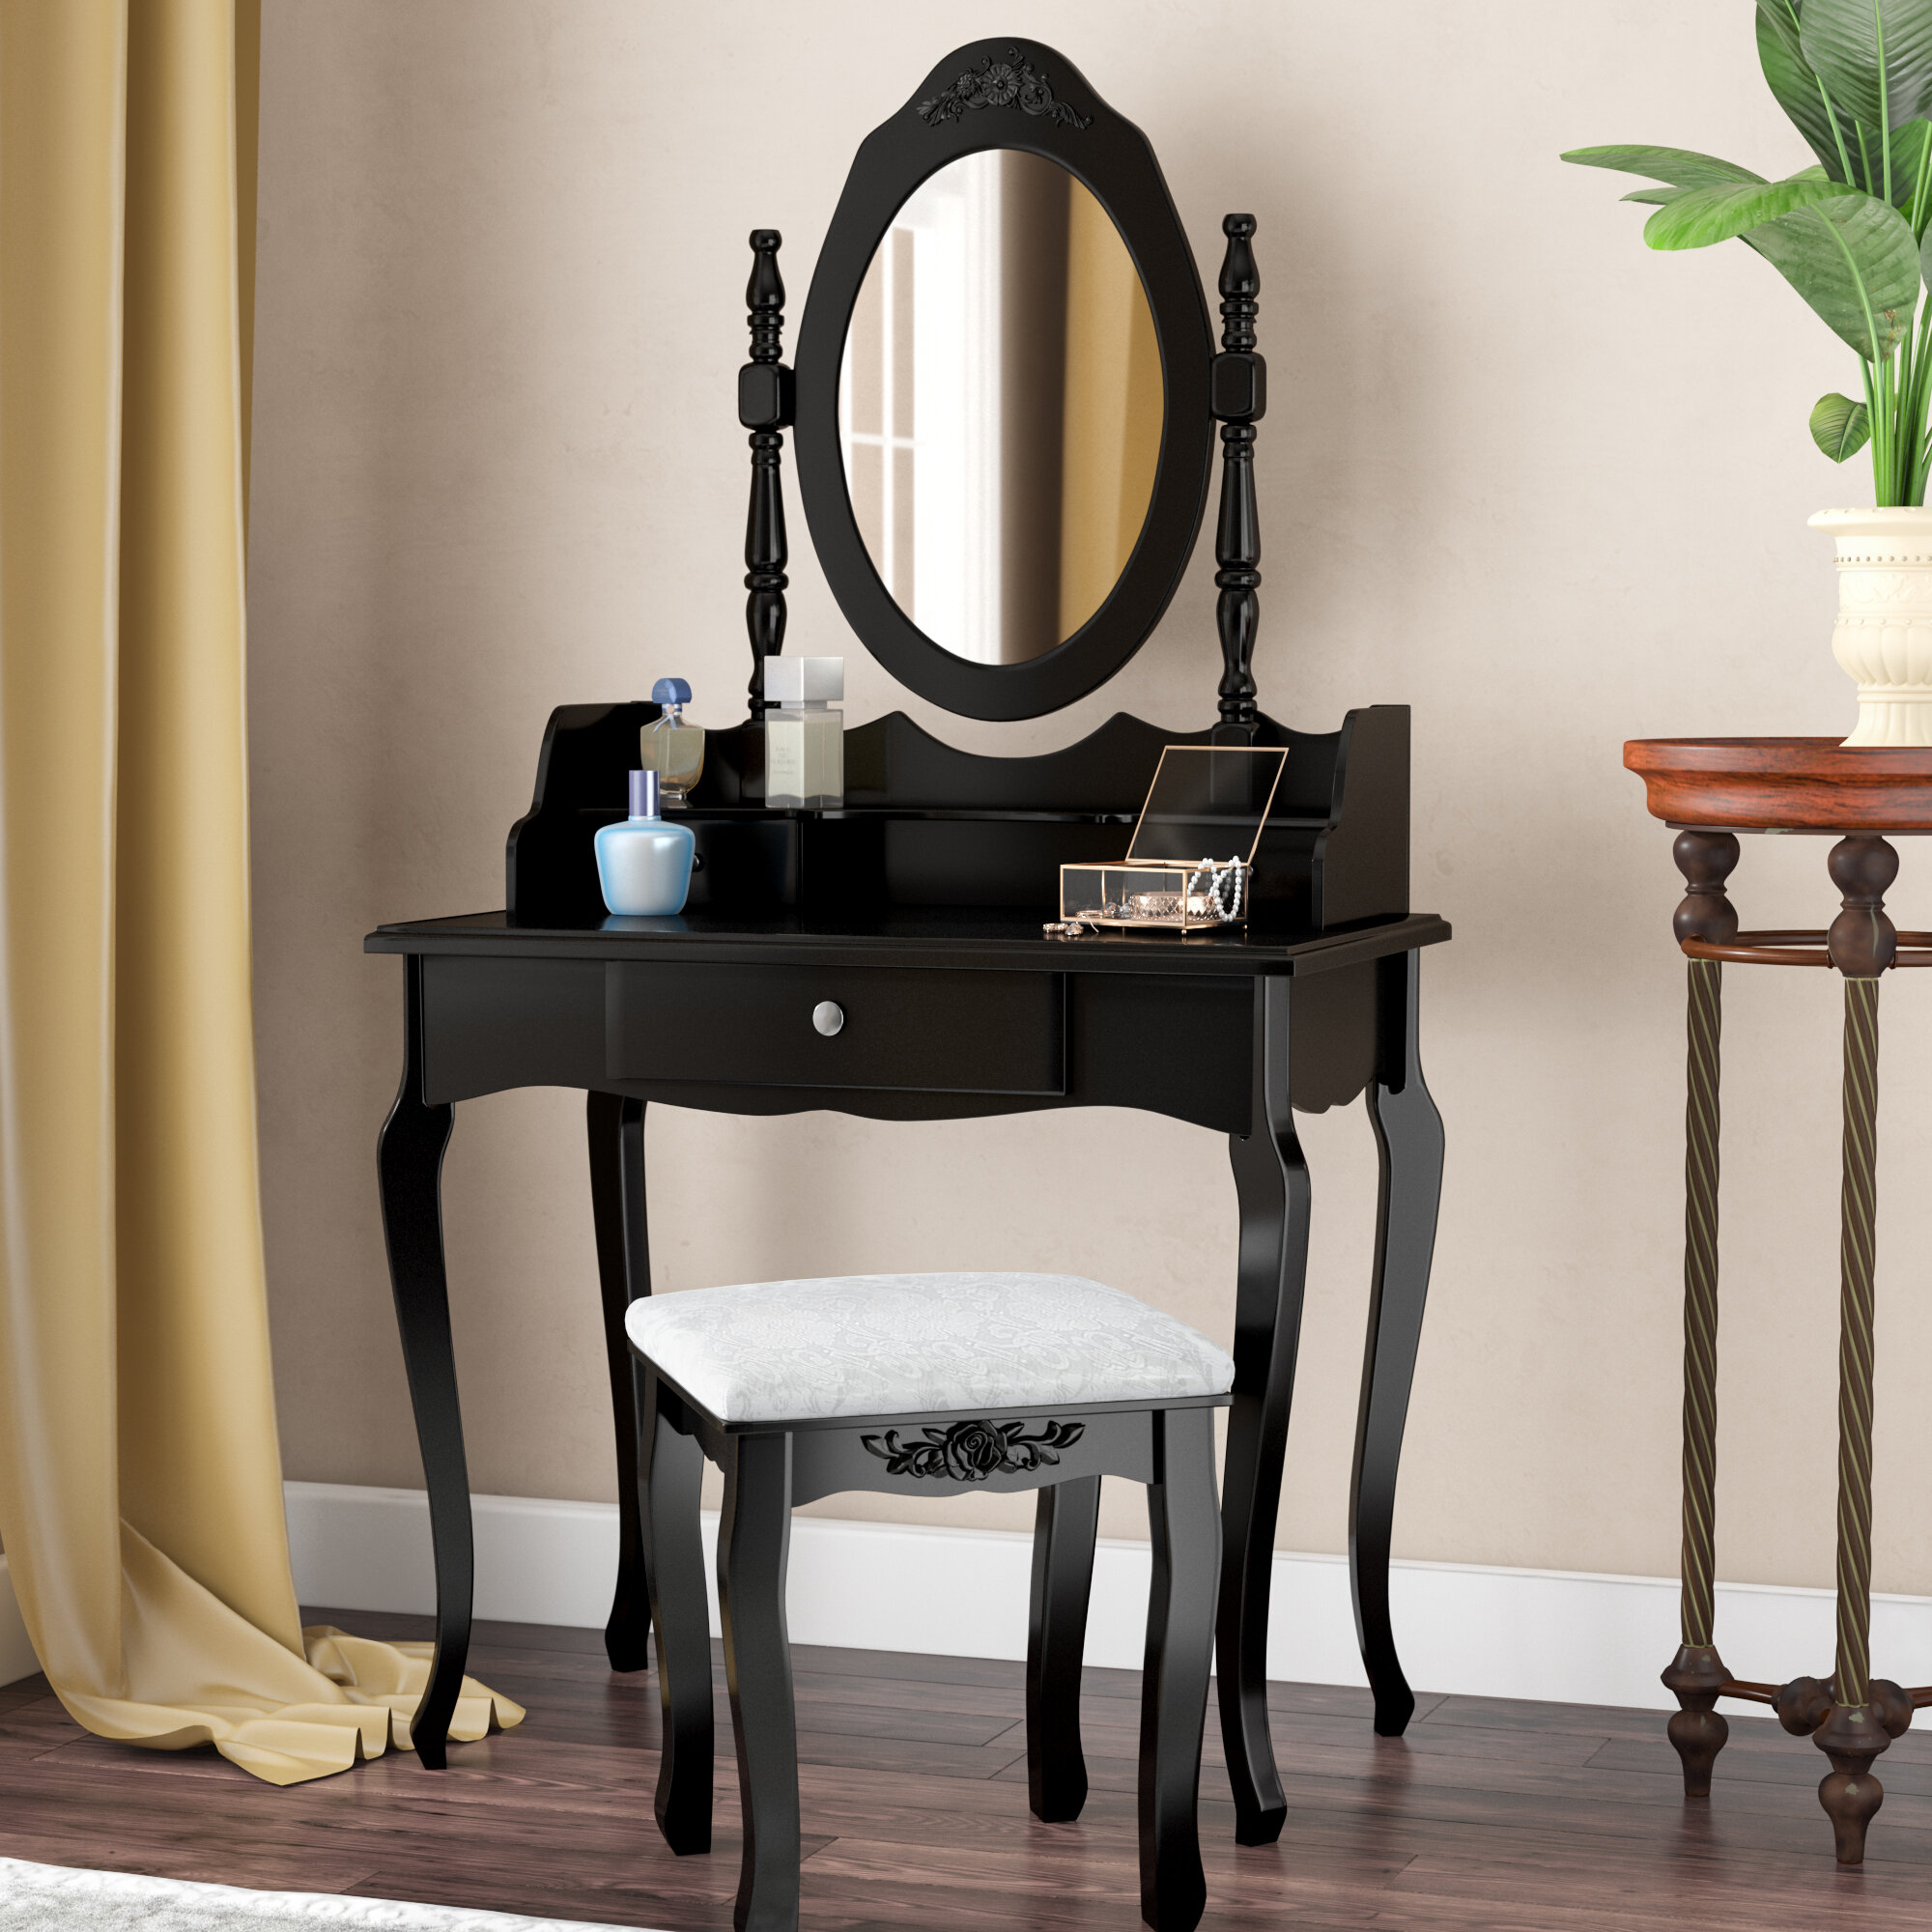 Astoria Grand Wilmette Vintage Makeup Vanity Set With Mirror Reviews Wayfair